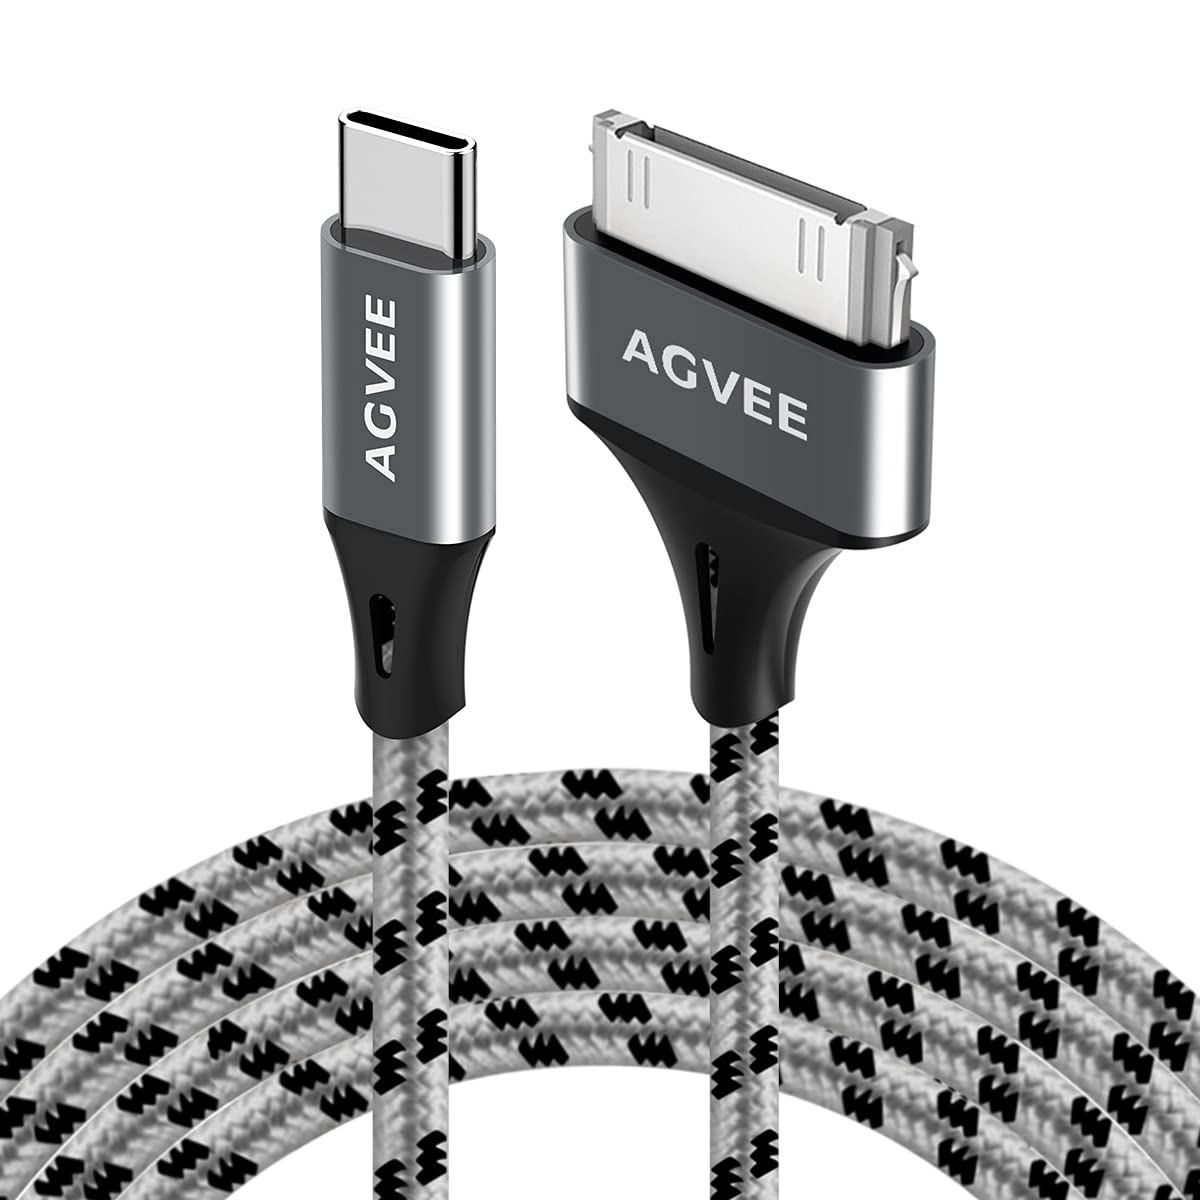 AGVEE [2 Pack 3ft] USB-C to 30 Pin Cable for Old iPhone 4/4S iPad 1/2/3 iPod, Braided Metal Shell Type-C to 30Pin Adapter Charging Charger Data Cord, Gray